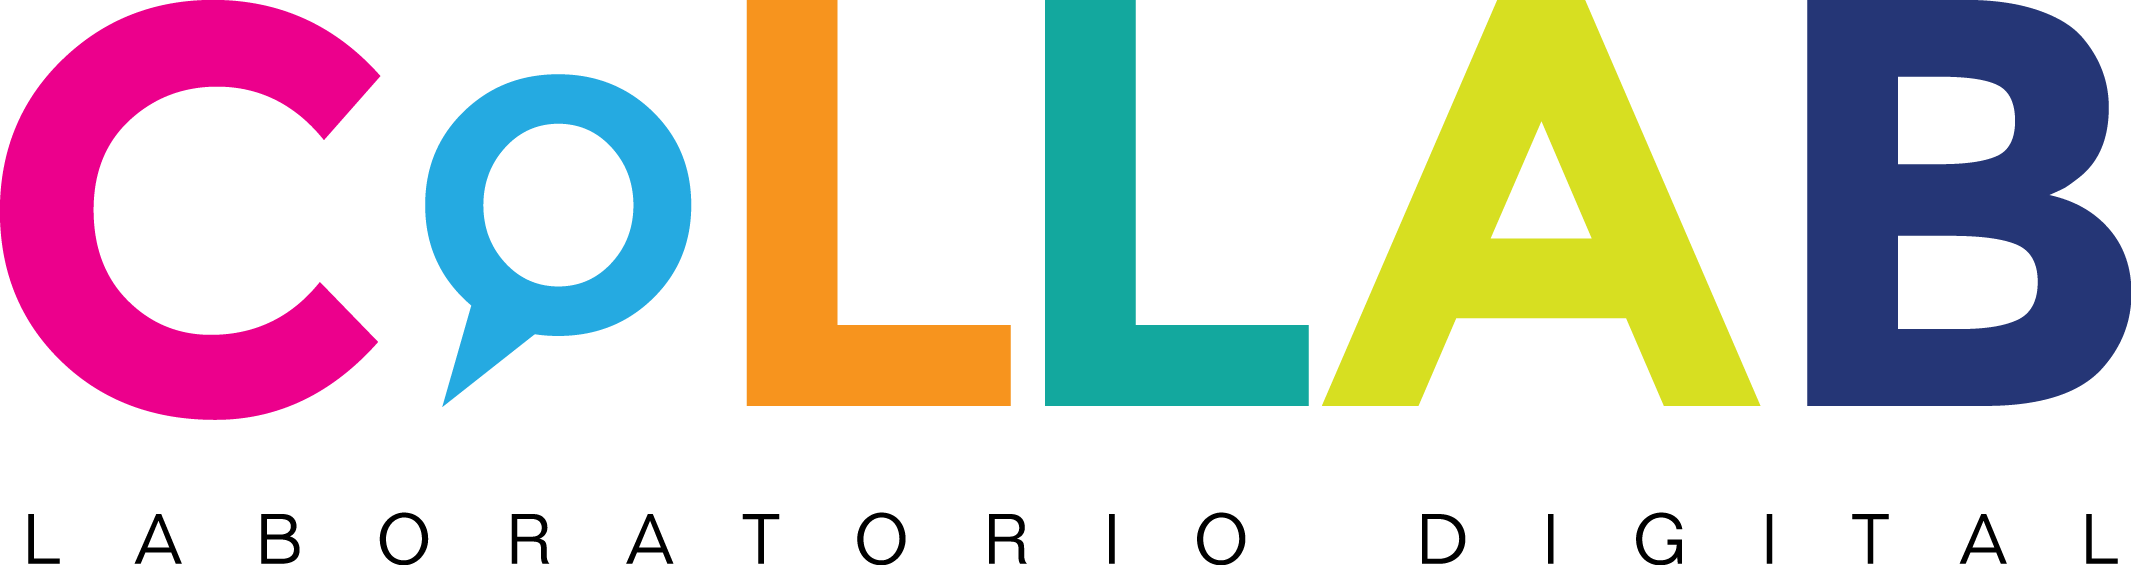 Collabdigital – Laboratorio de Servicios Digitales en México